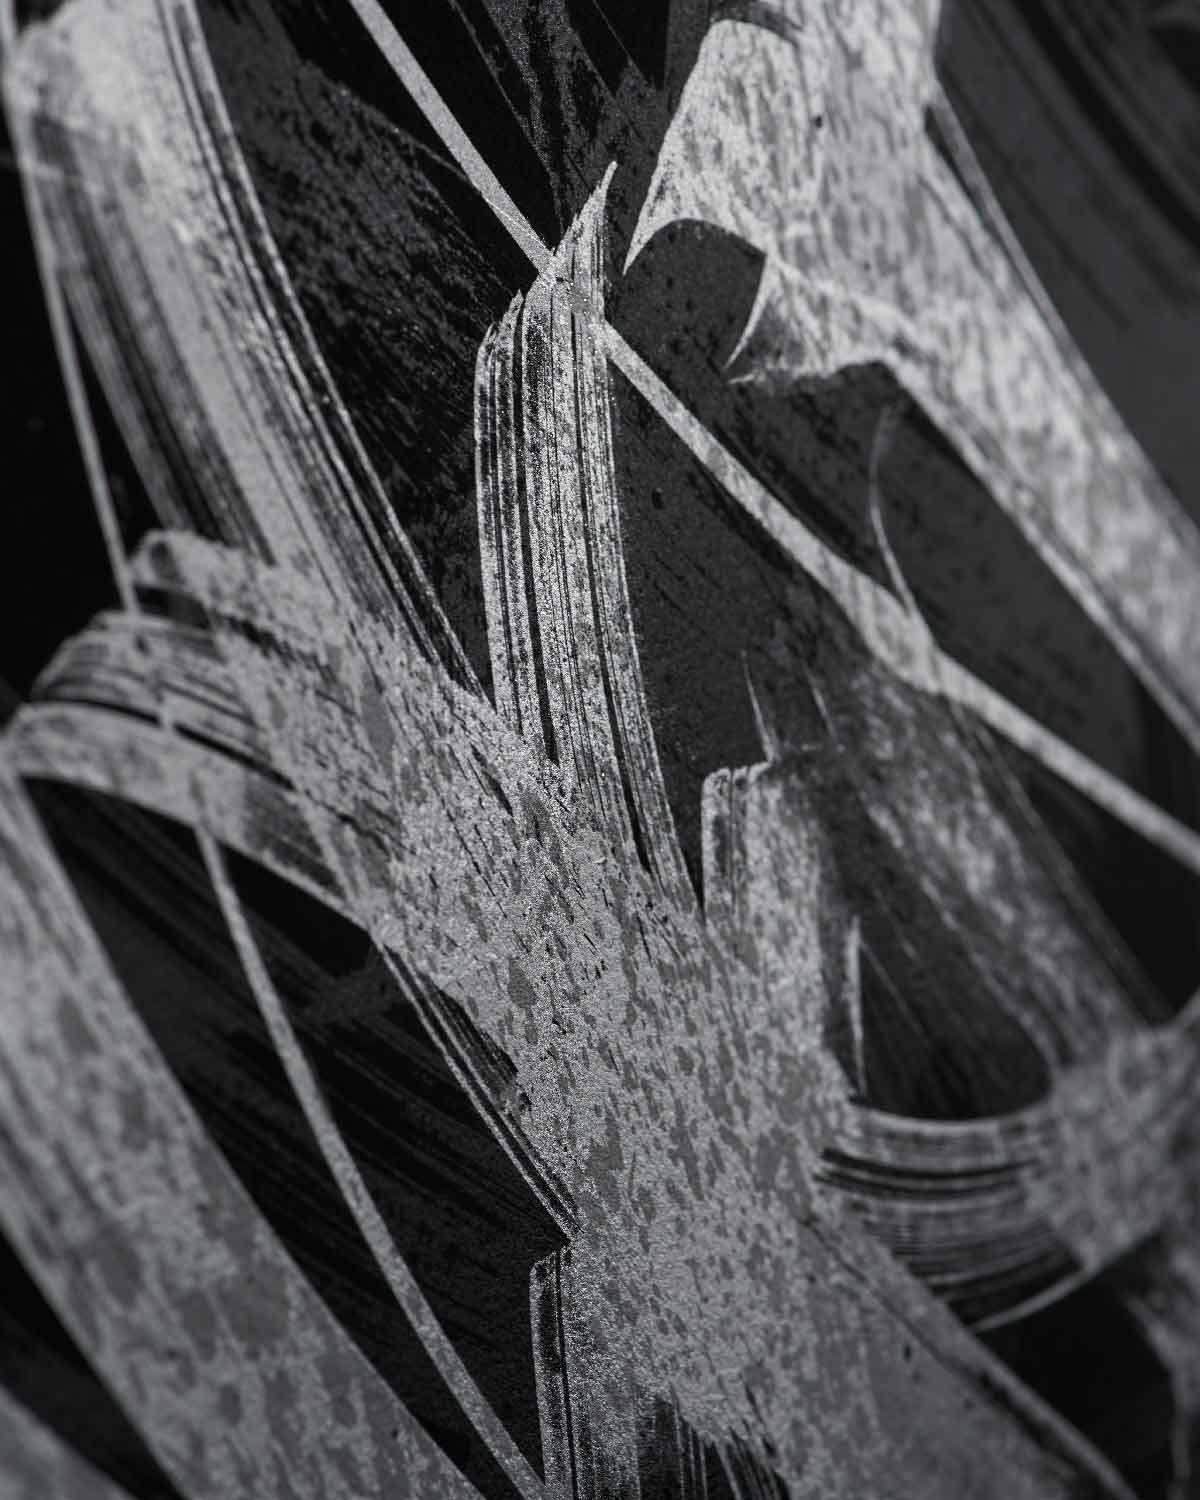 Detail of Calligraphy Fine Art Print by the artist Said Dokins. Calligraffiti Ghosting Series